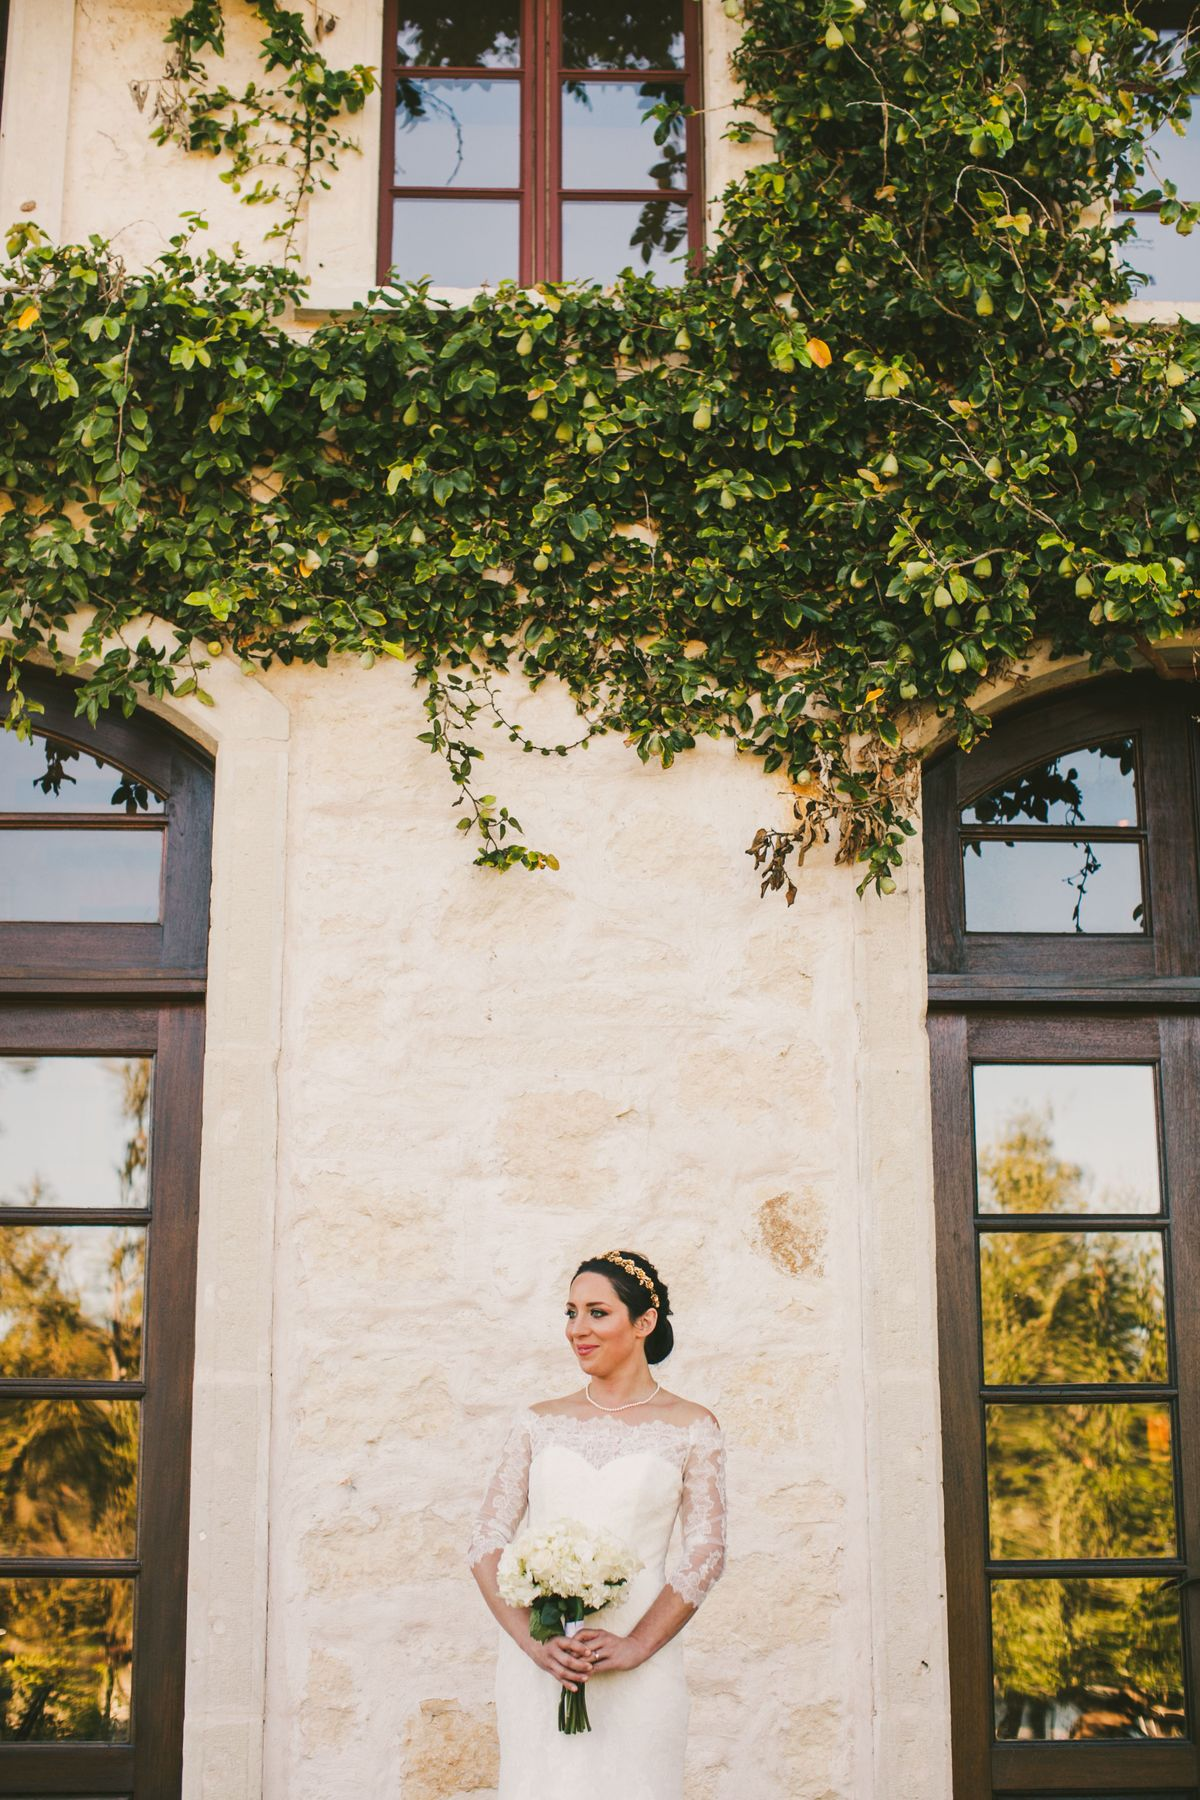 emilys-bridal-portraits-in-austin-texas-0003.jpg